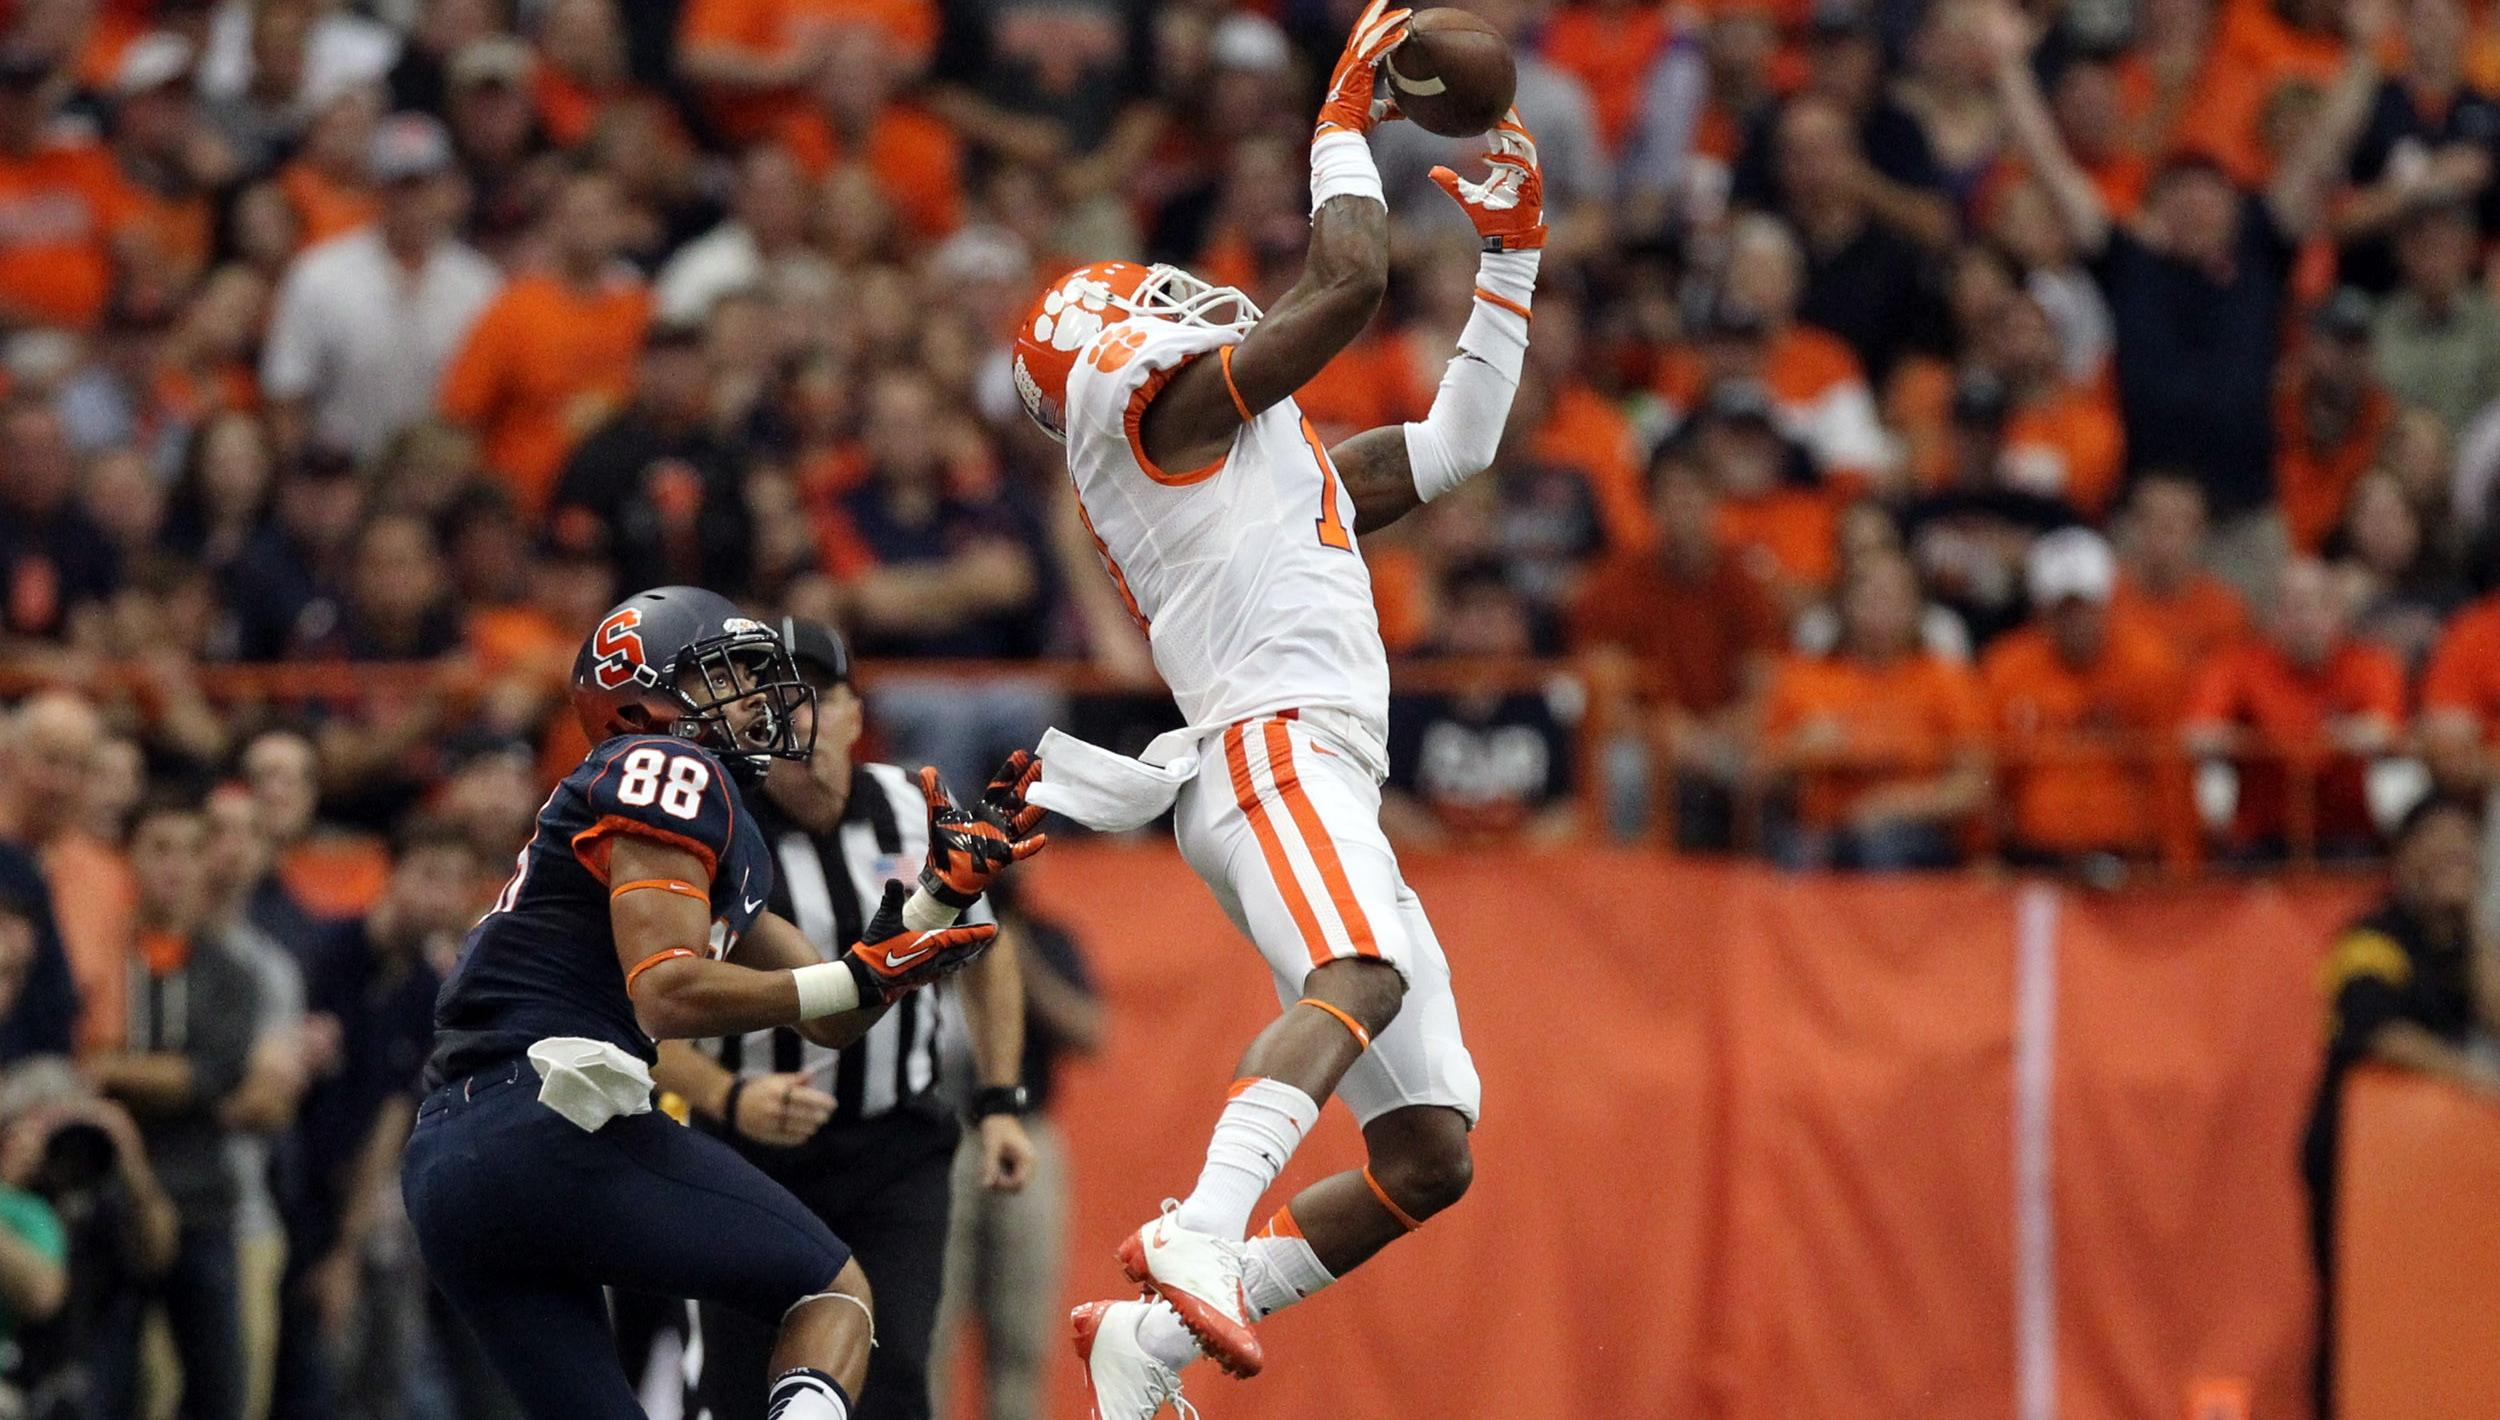 Clemson @ Syracuse Replay Now Available on ClemsonTigers.com